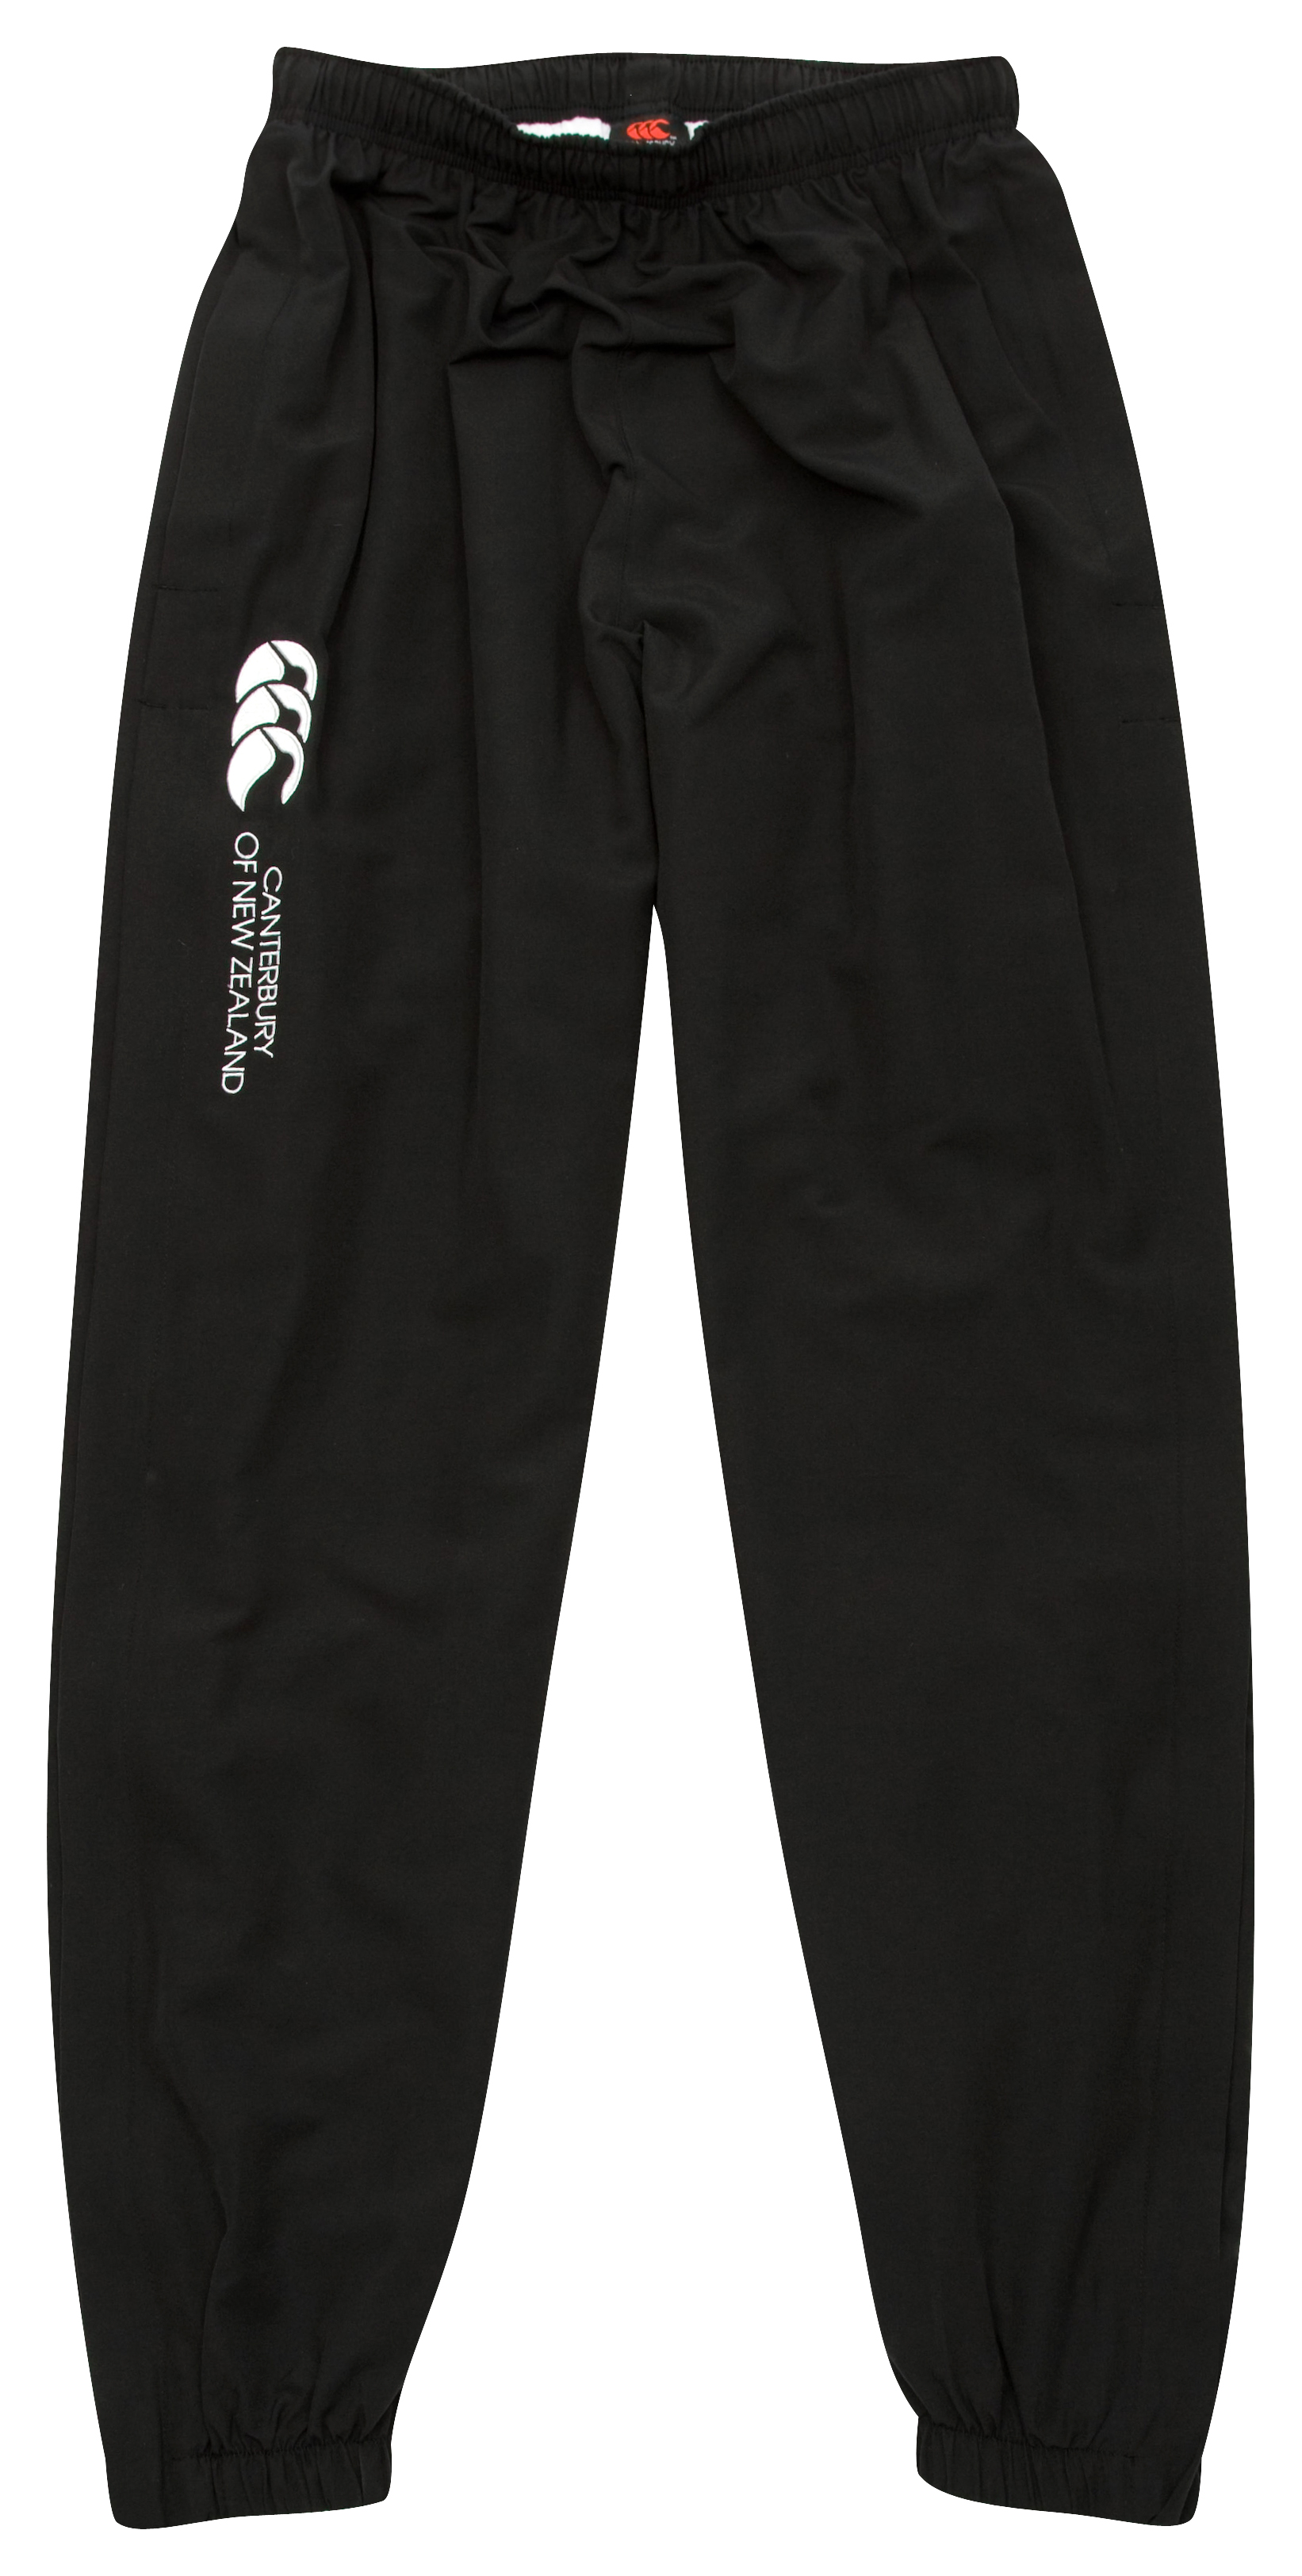 Canterbury Stadium Training Pants - Black